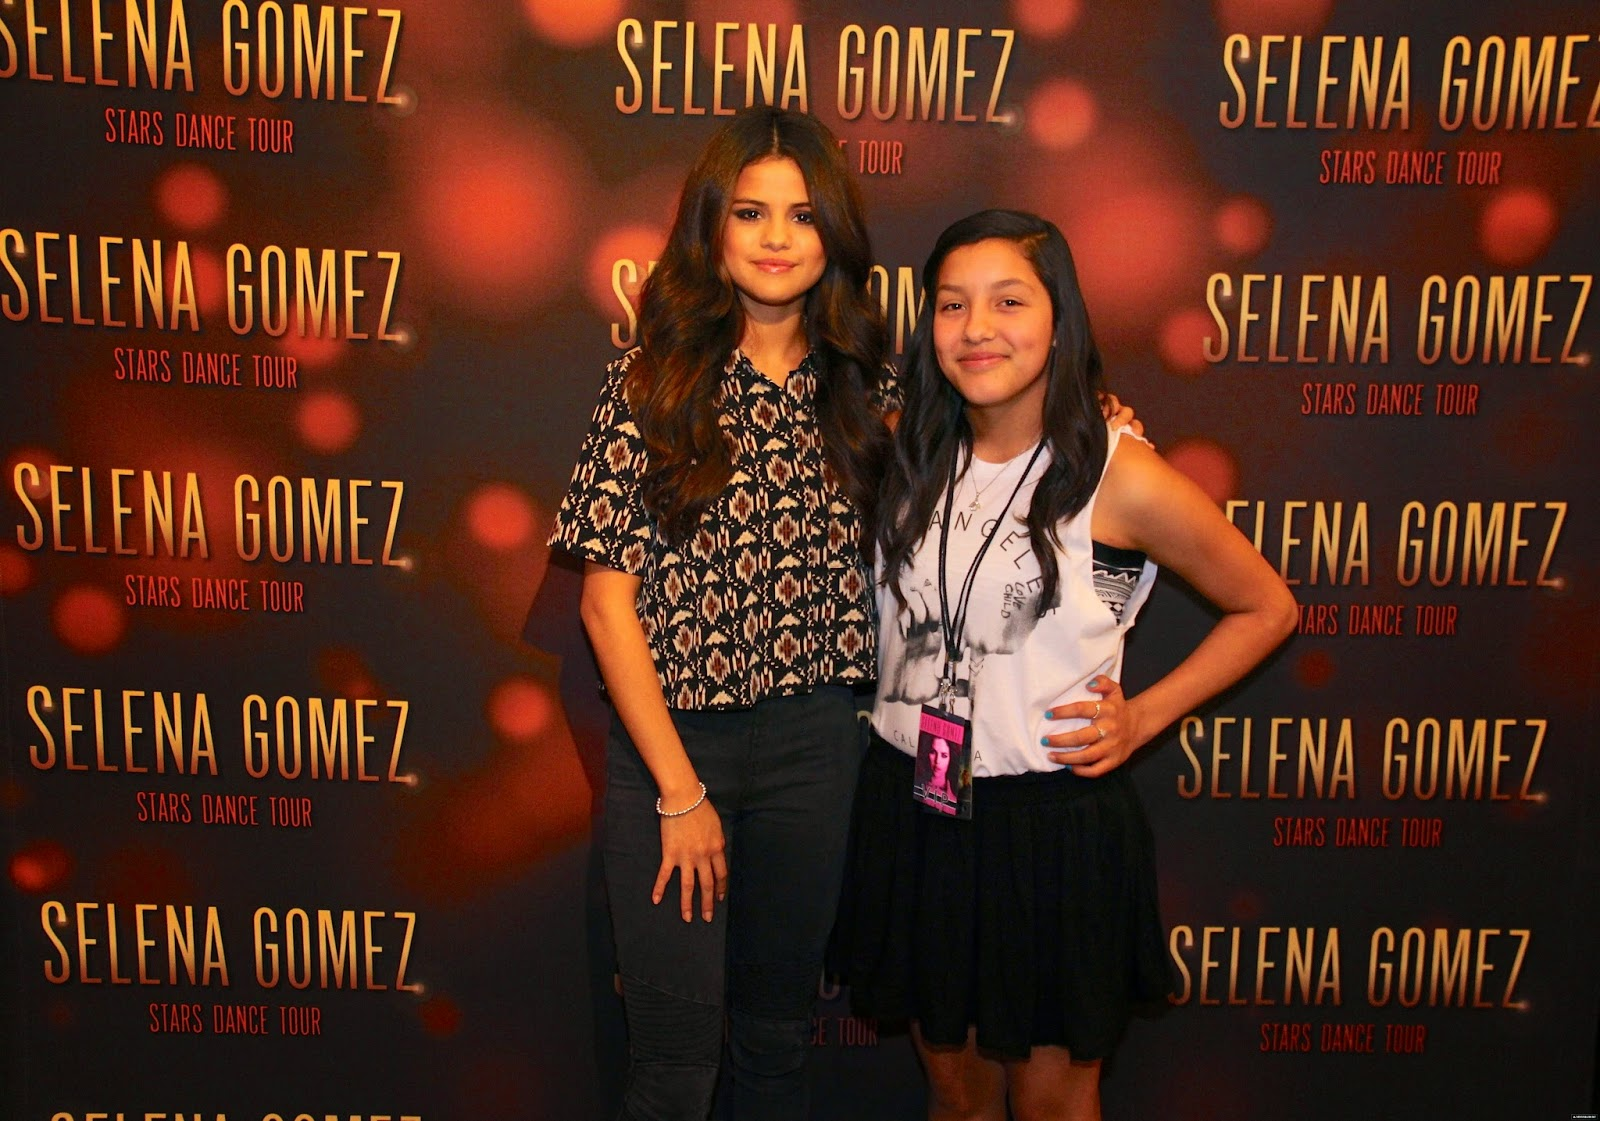 dancing with the stars tour 2015 meet and greet